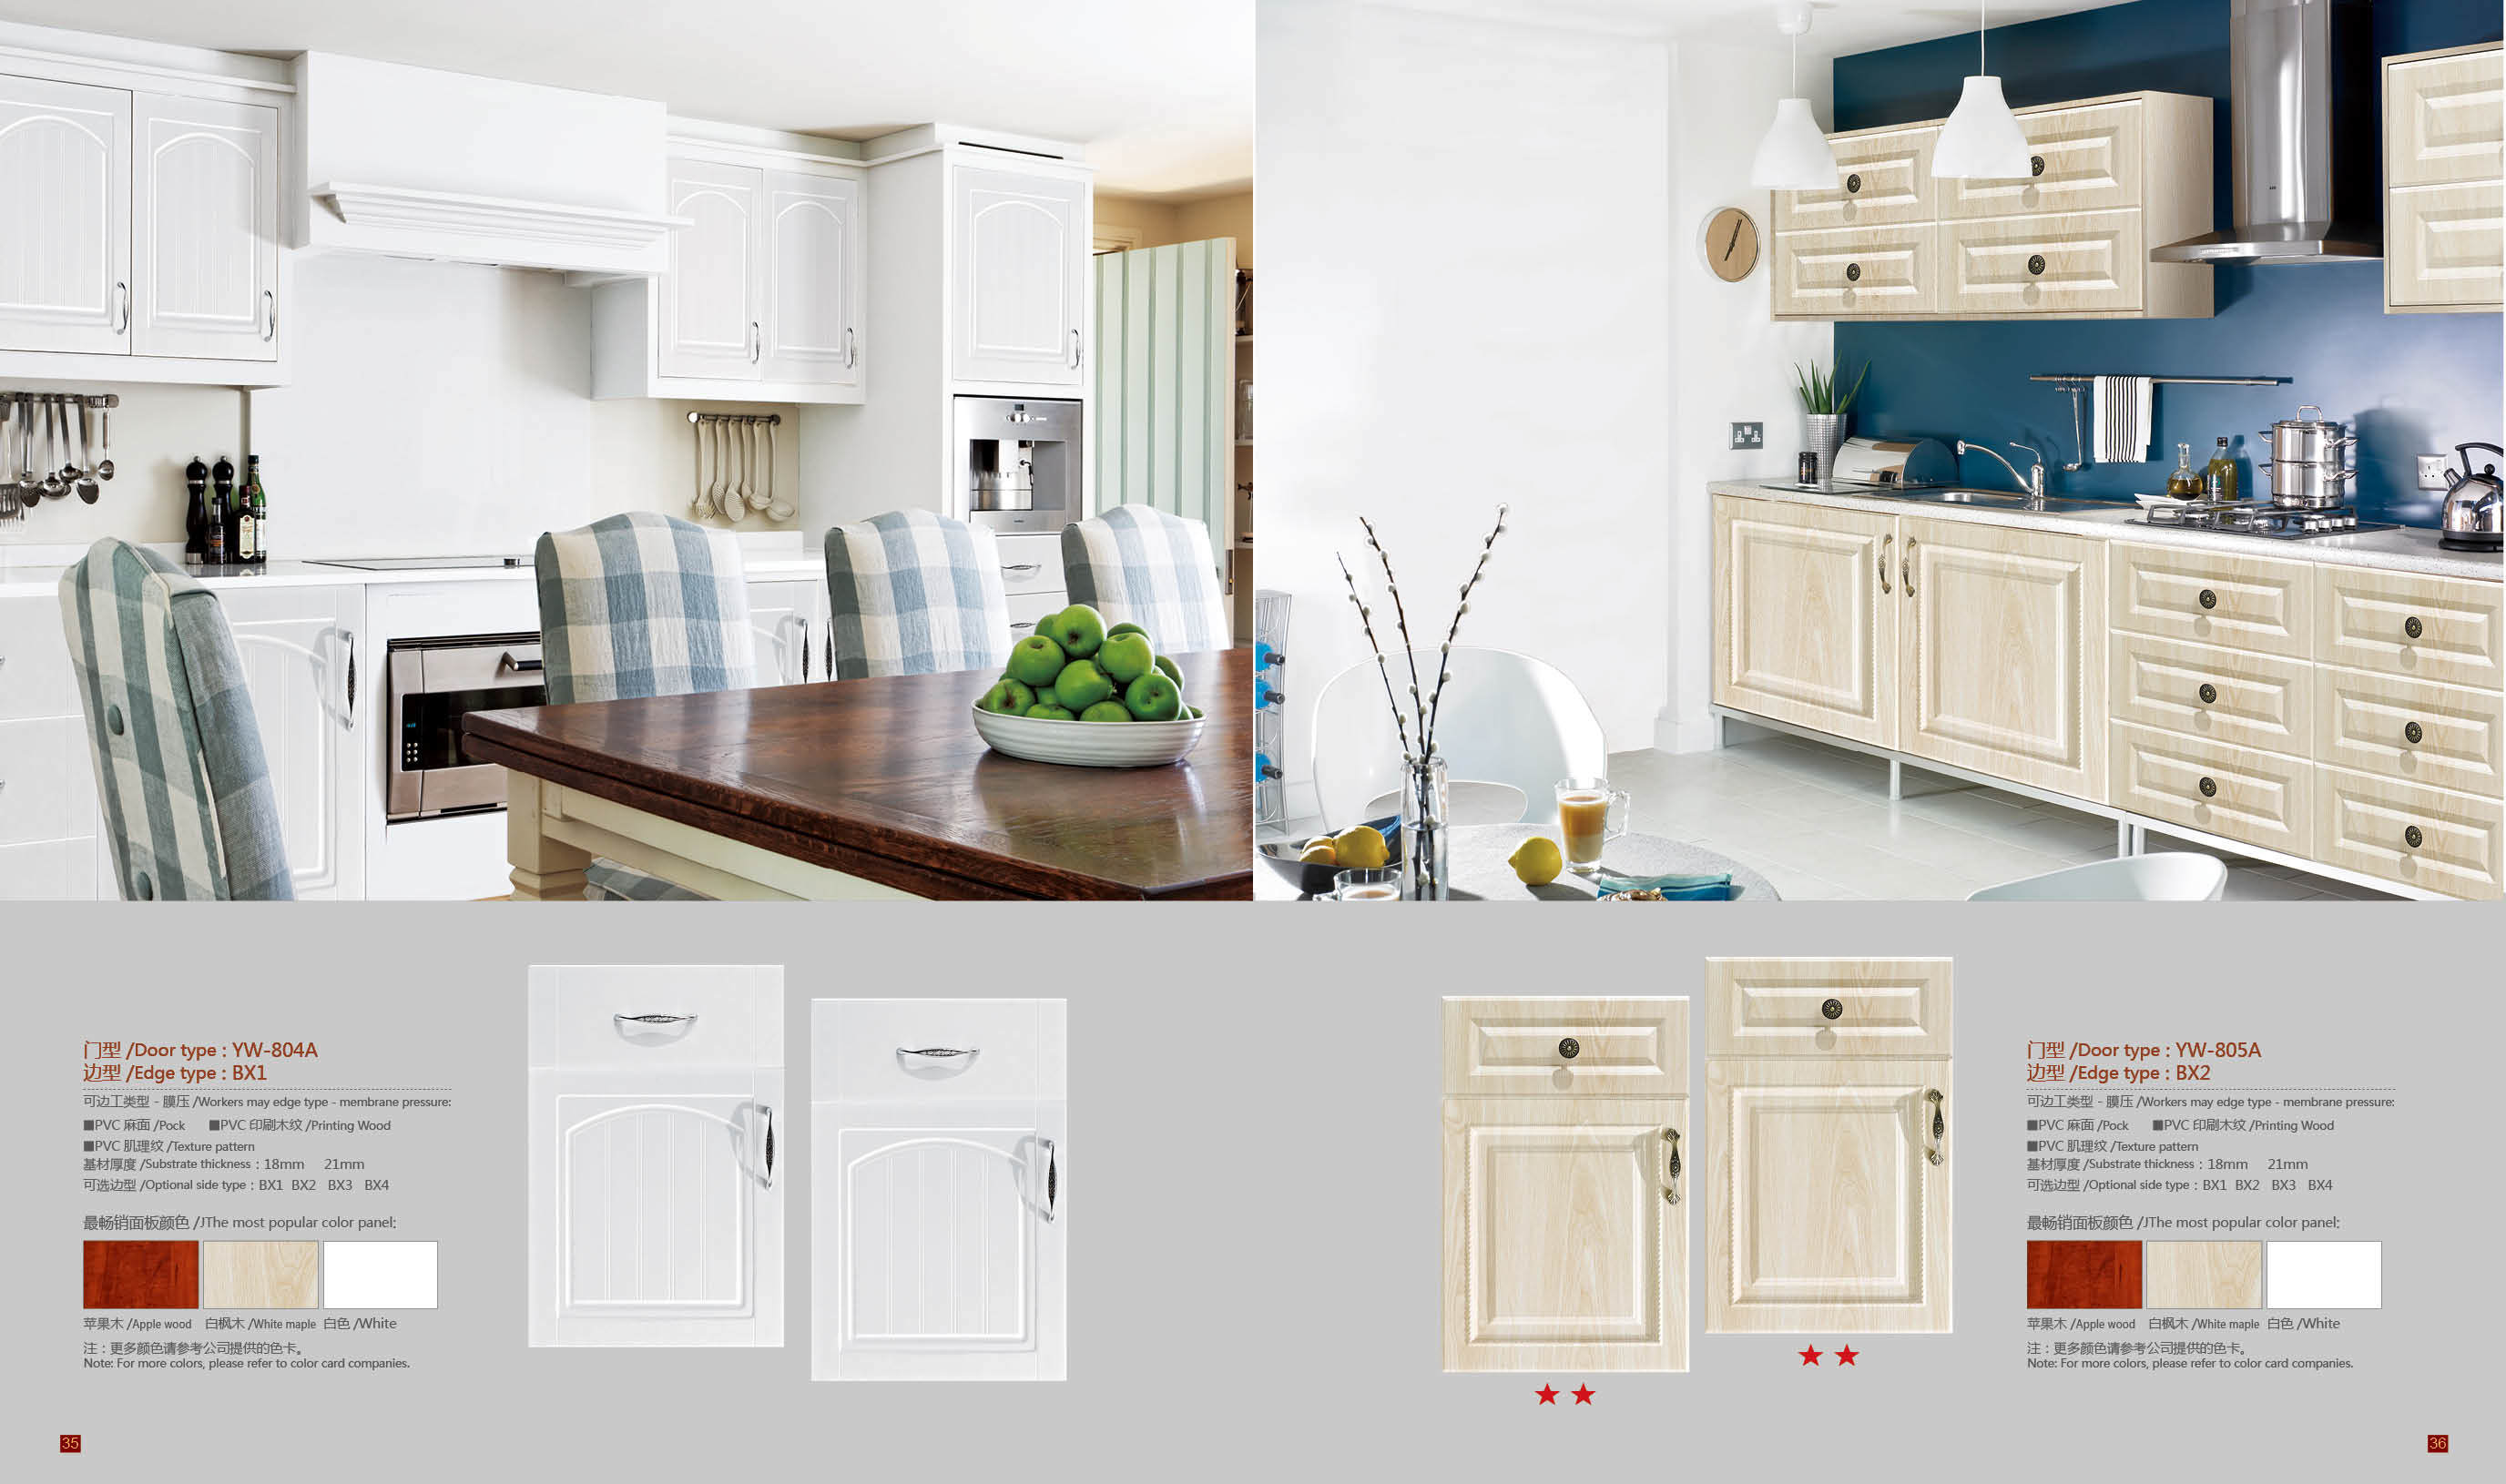 Guangzhou zhihua kitchen cabinet accessories factory - Modular Kitchen Cabinets Guangzhou Zhihua Kitchen Cabinet Accessories Factory Page 2